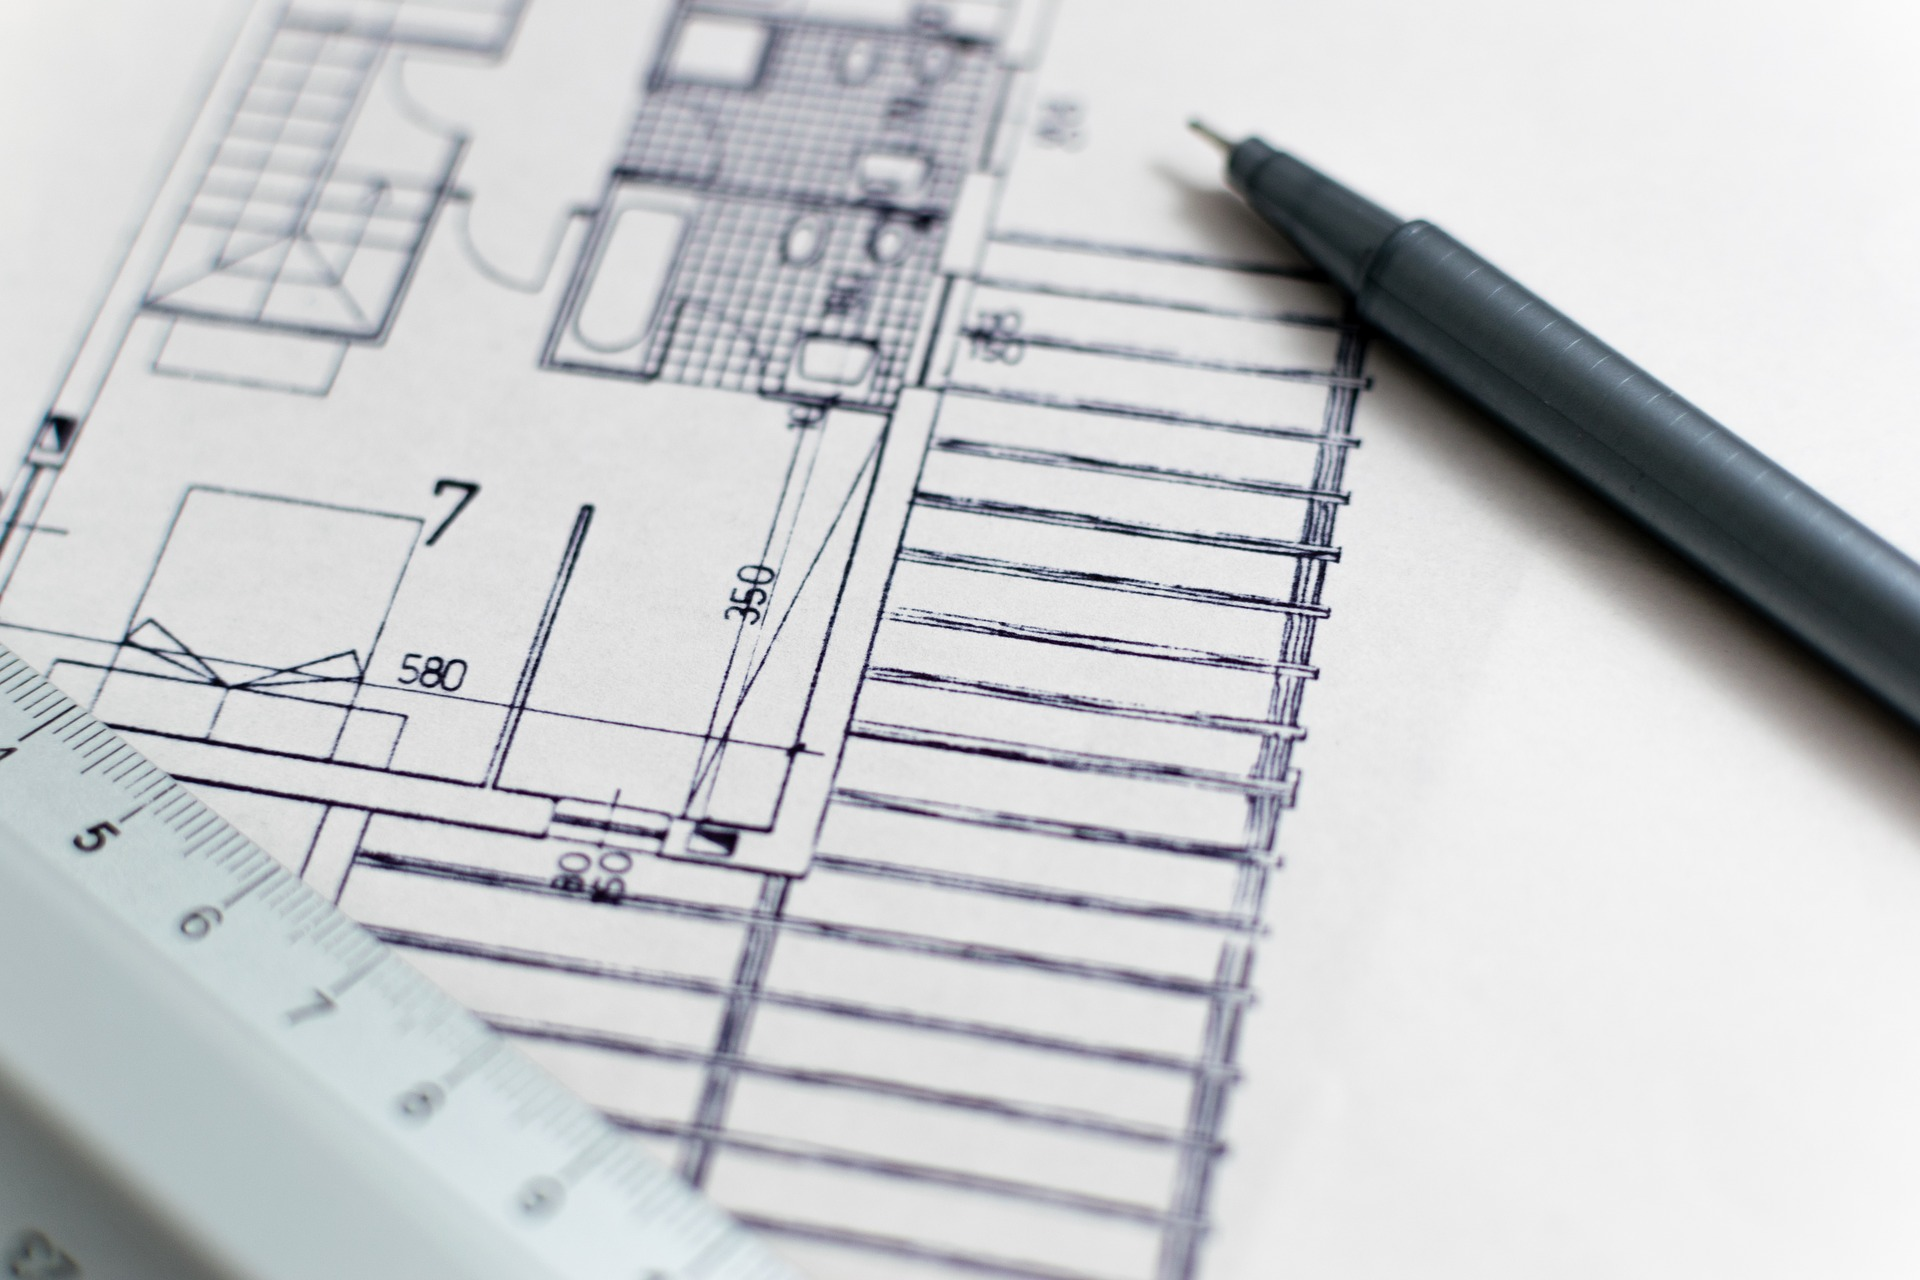 Blueprint of a home drawn on a white sheet of paper.